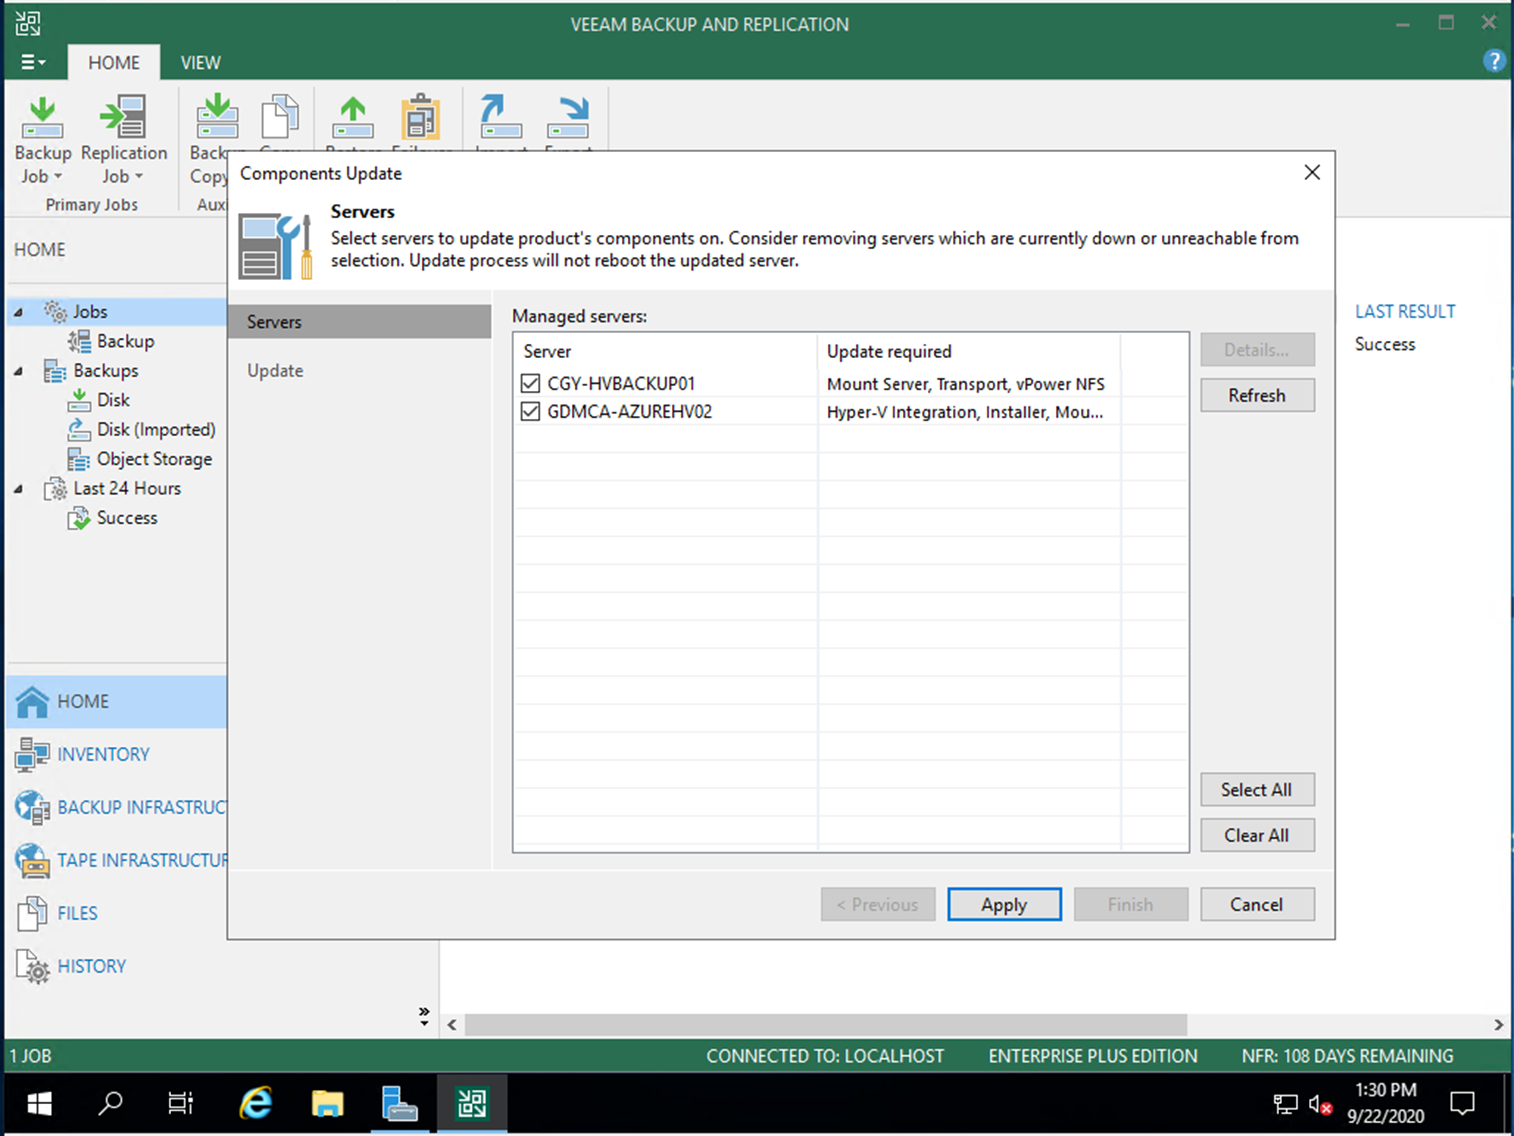 100320 1854 HowtoInstal20 - How to Install (Upgrade) Veeam Backup and Replication V10a #Veeam #VBR 10a #Hyper-V #WINDOWSERVER #Azure #AWS #NAS #VMWARE #vCloud #Azure Stack #Linux